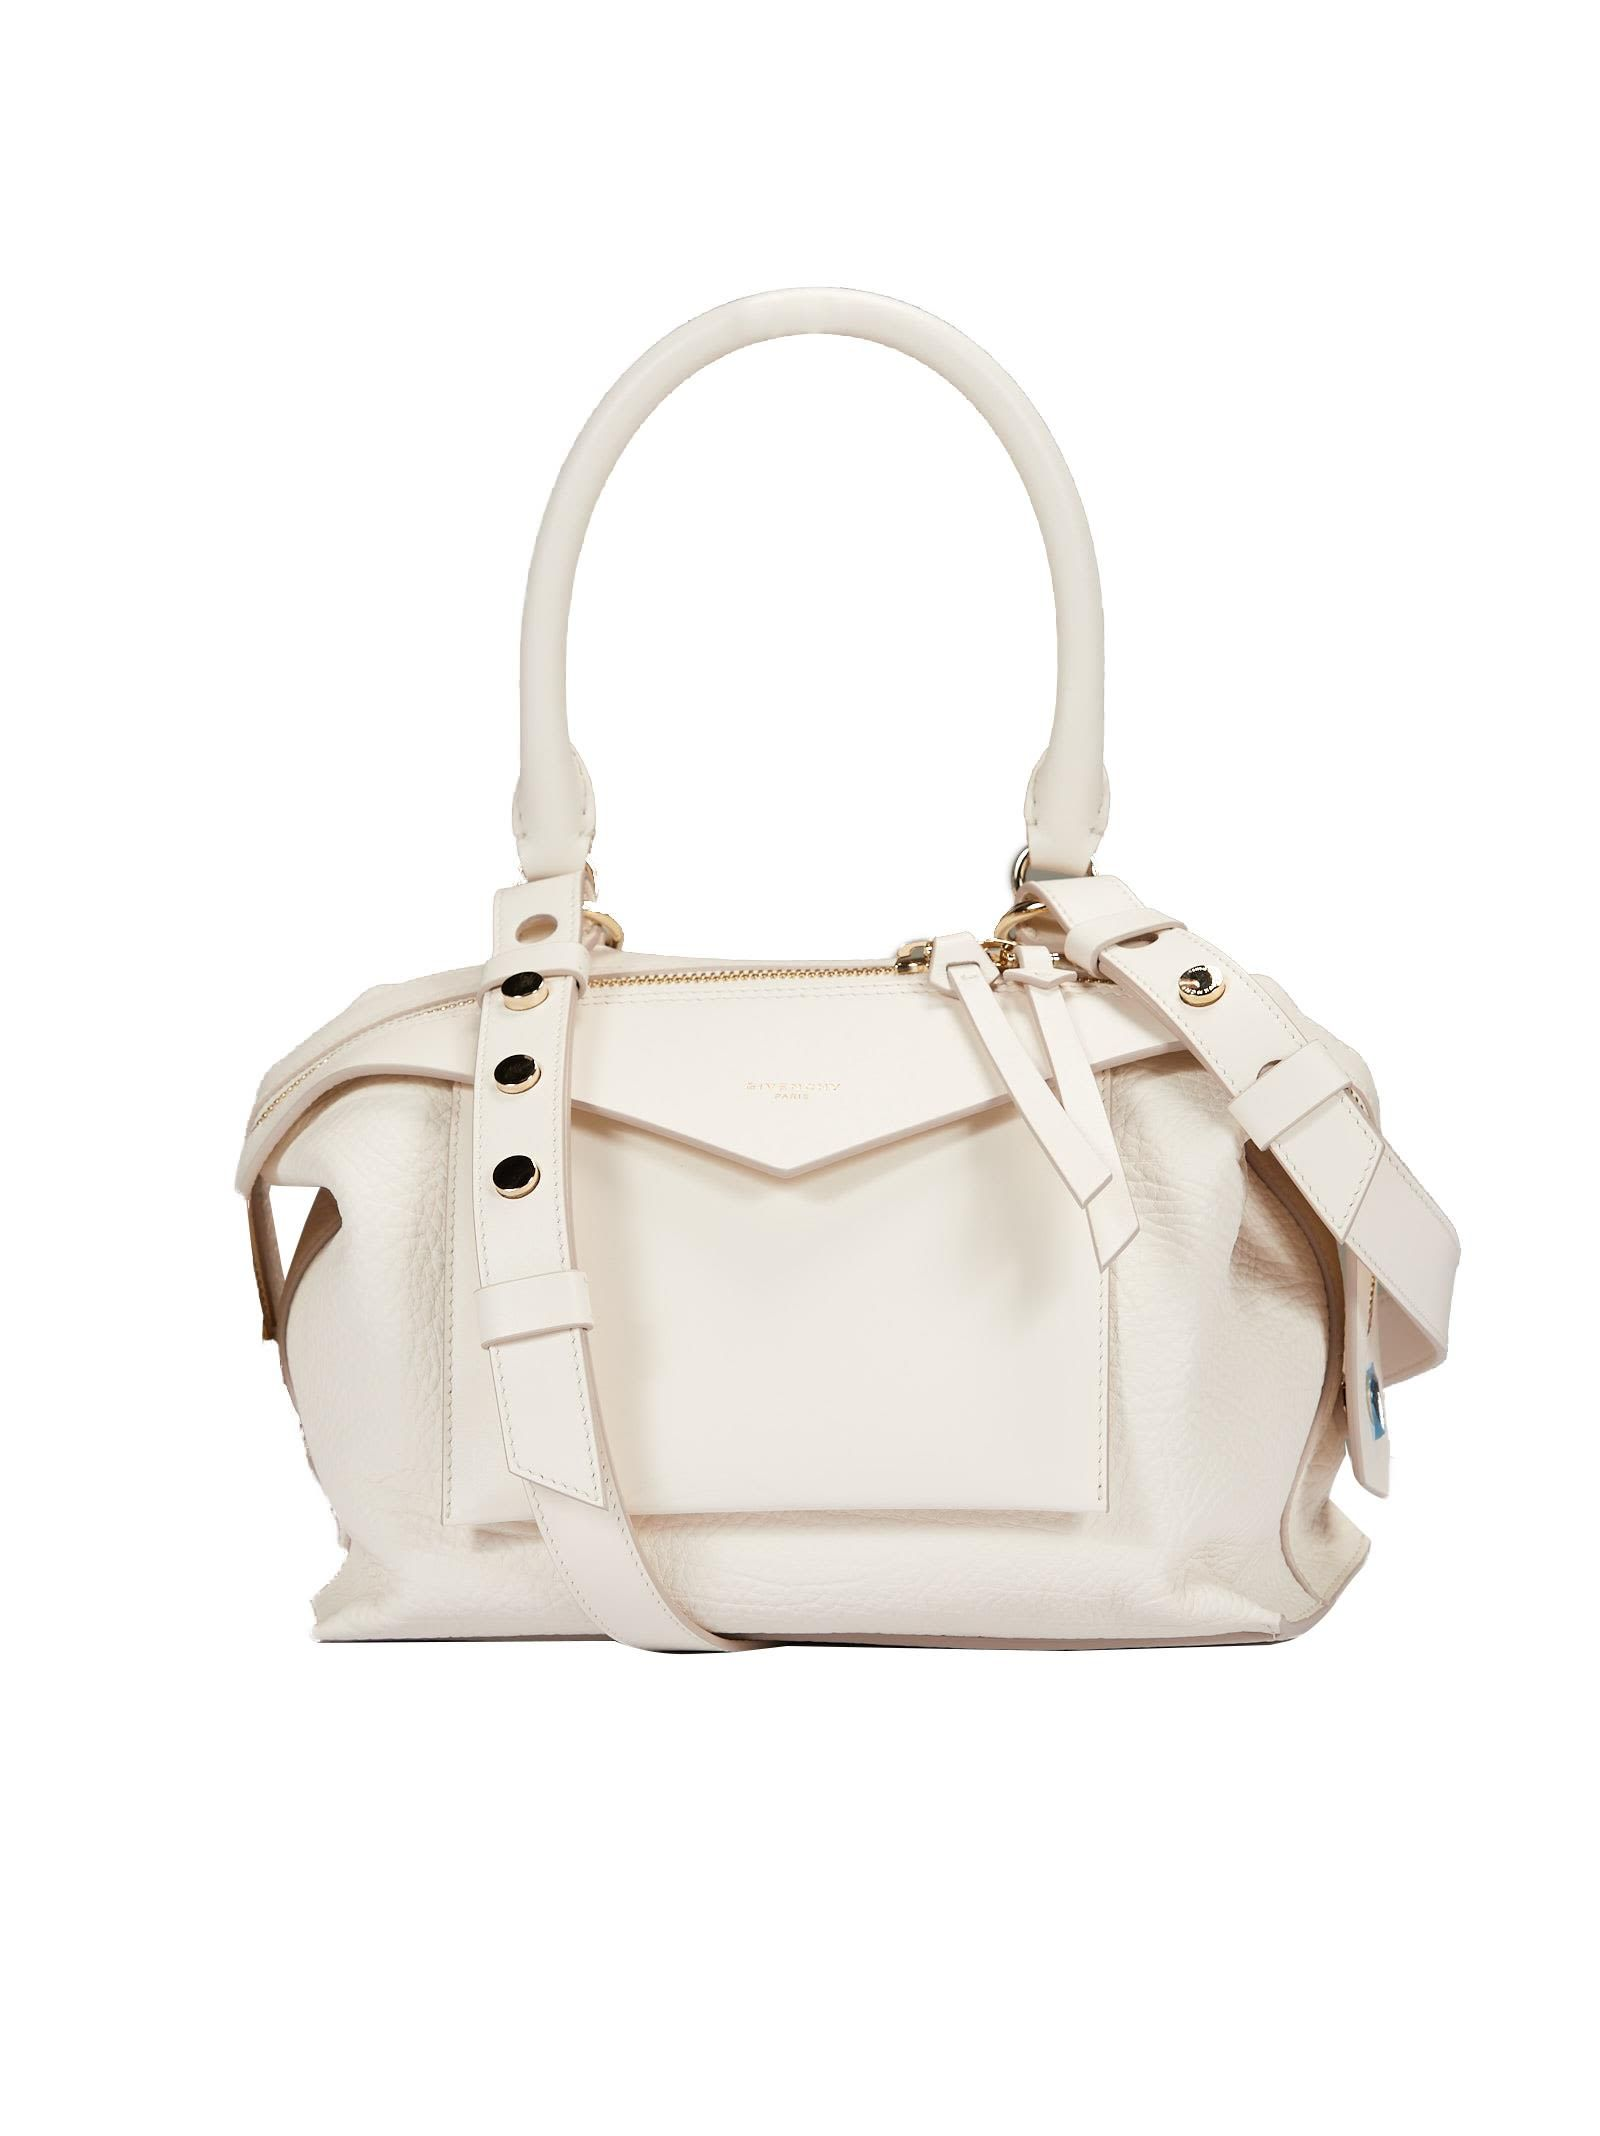 b32e5f4f2a3 Sway Tote, Bianco   Givenchy, Leather totes and Shoulder bags